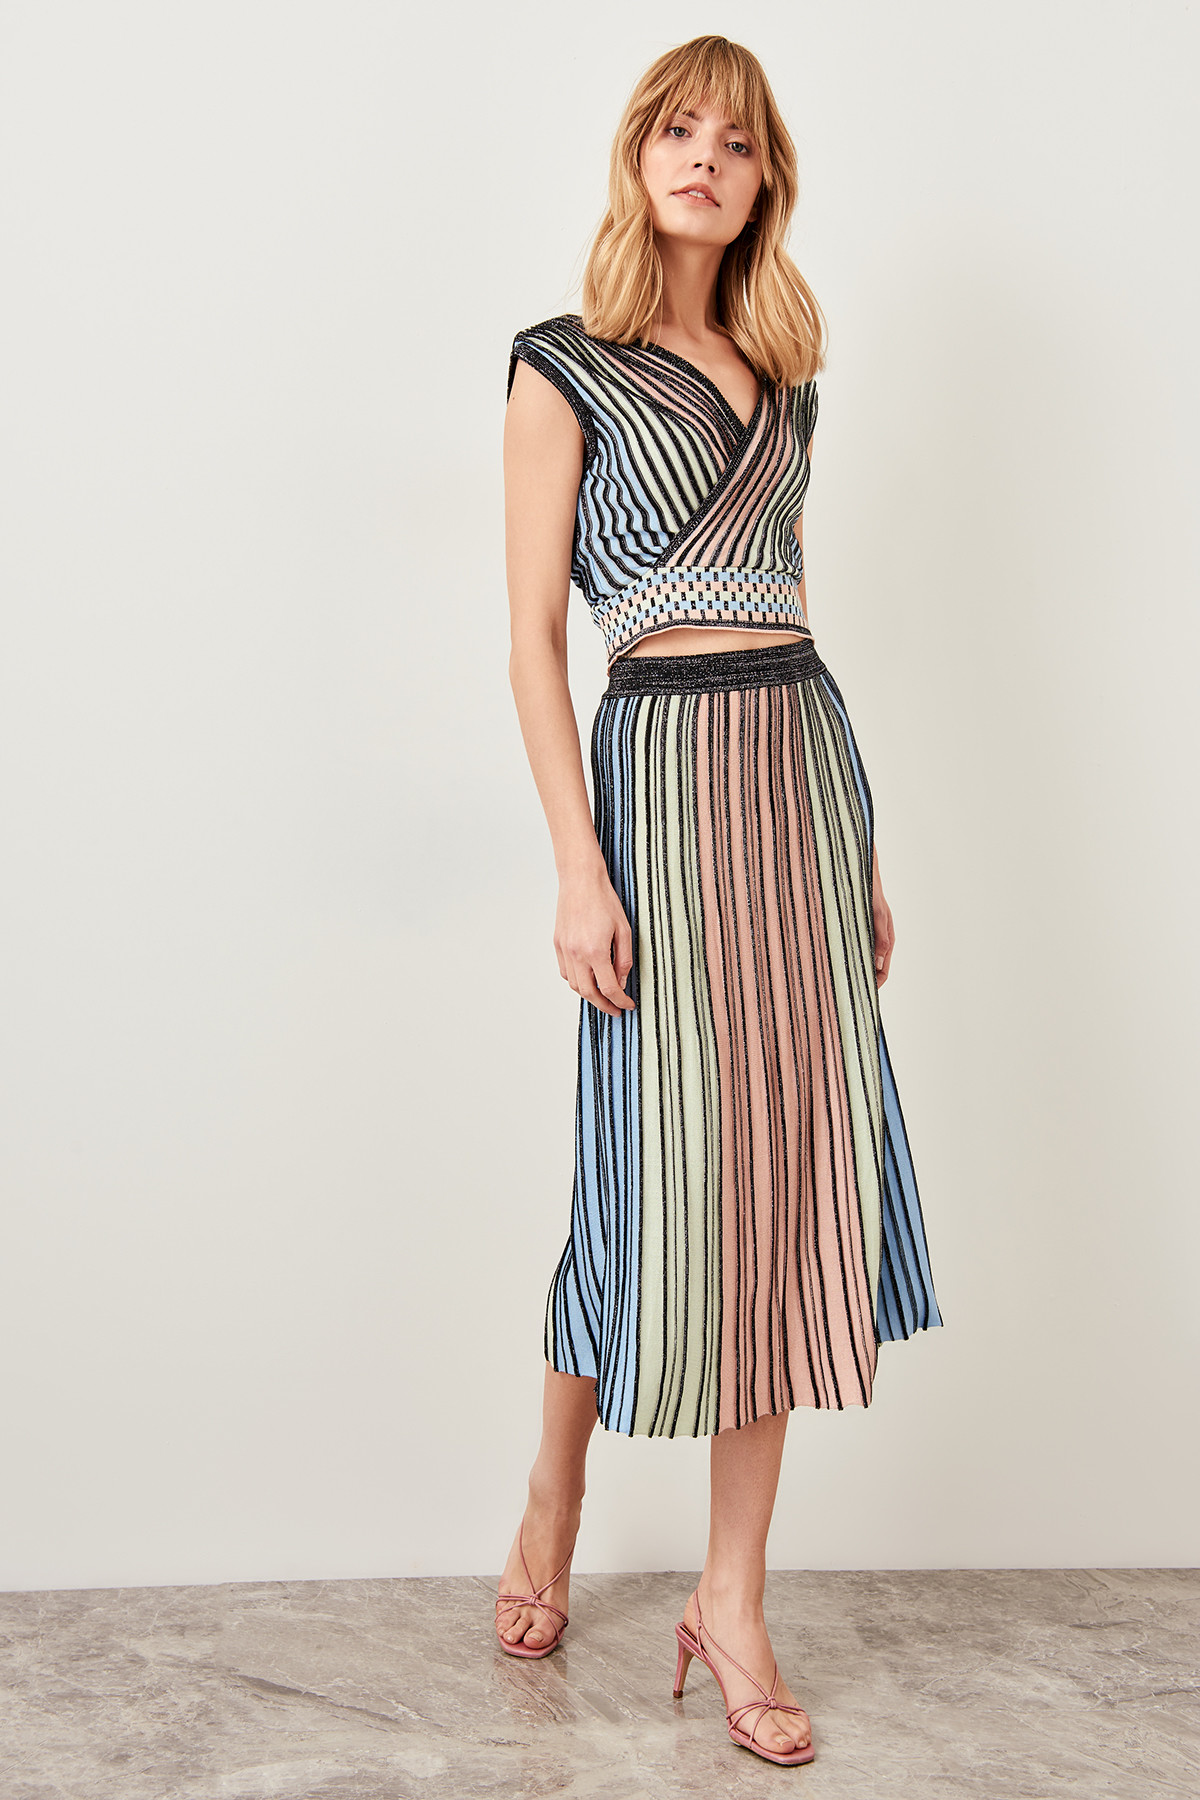 Trendyol Multicolored Knitwear Skirt Or Tops Seperately Summer Sparkle Pleated TCLSS19DU0045